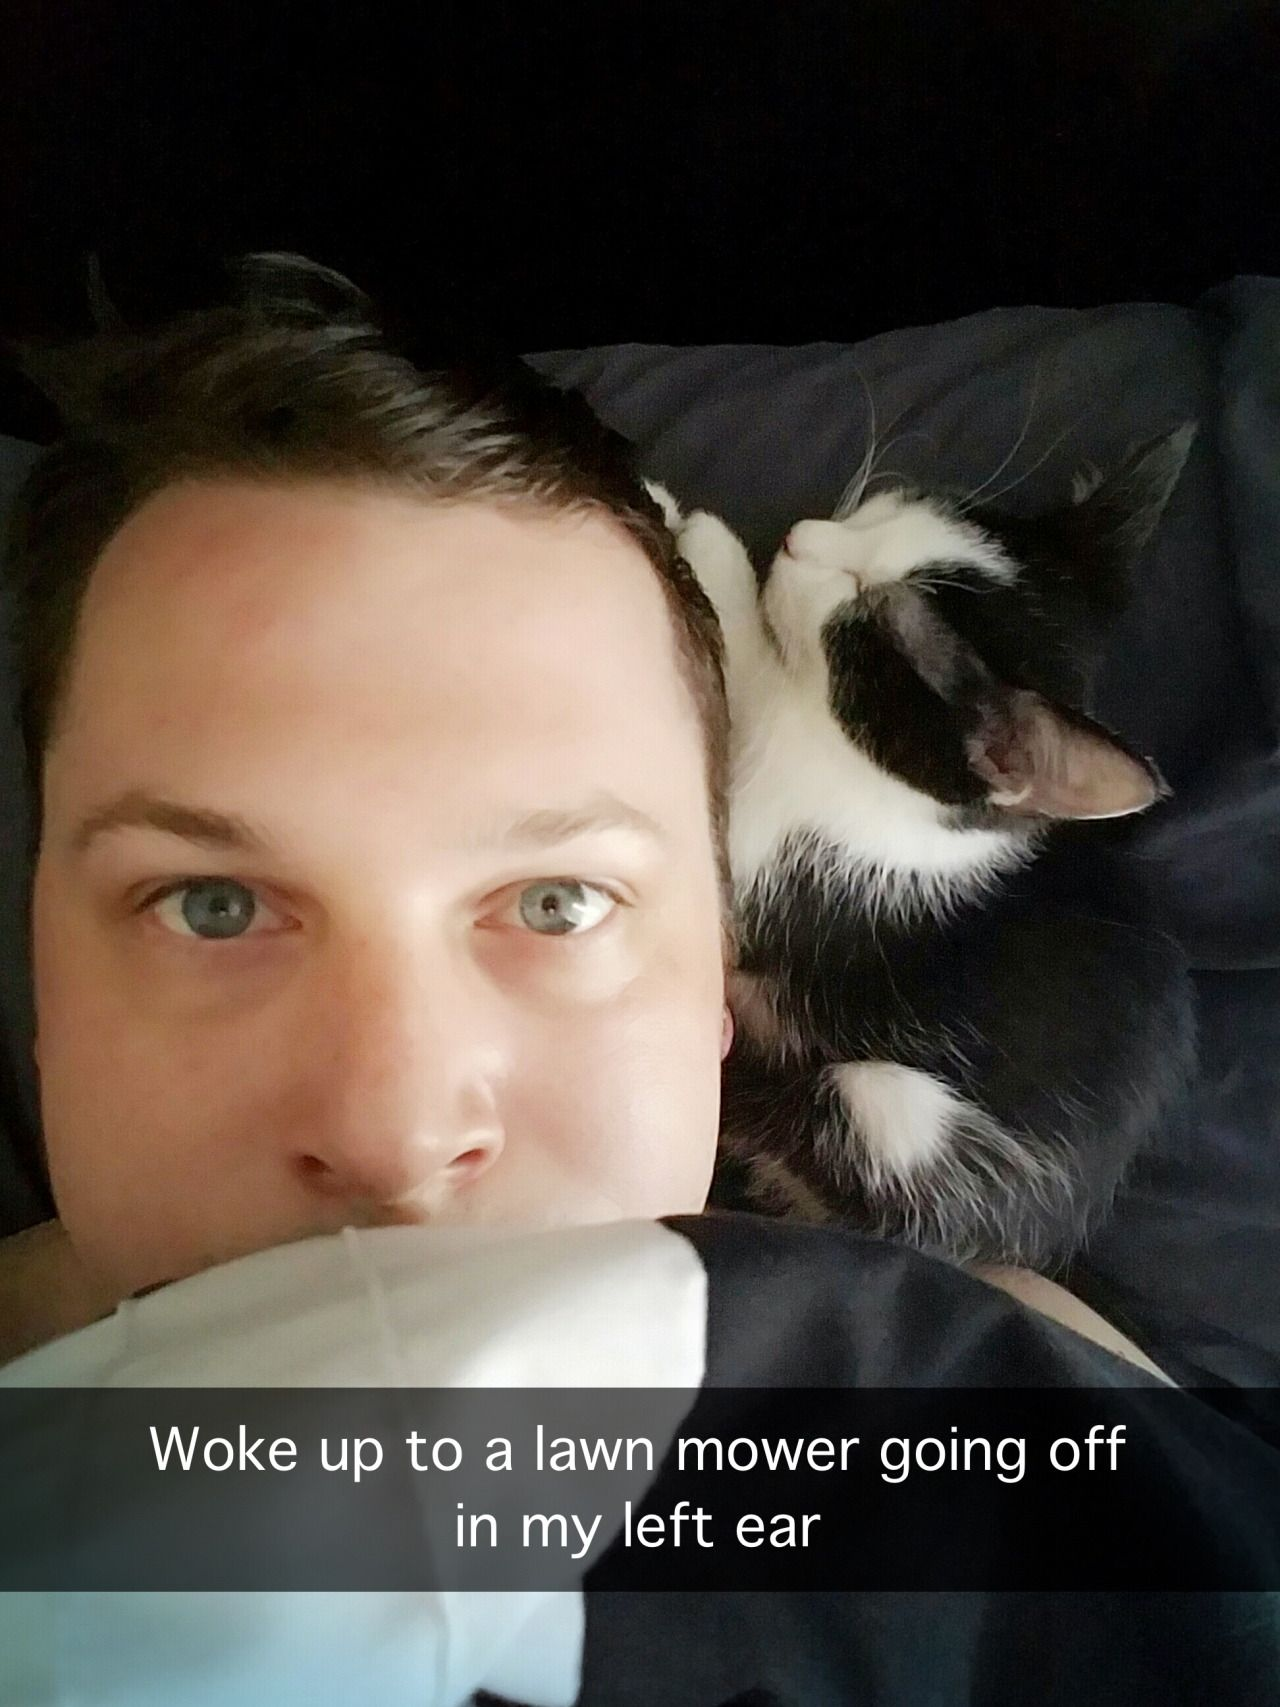 Woke up to a lawn mower going off in my left ear